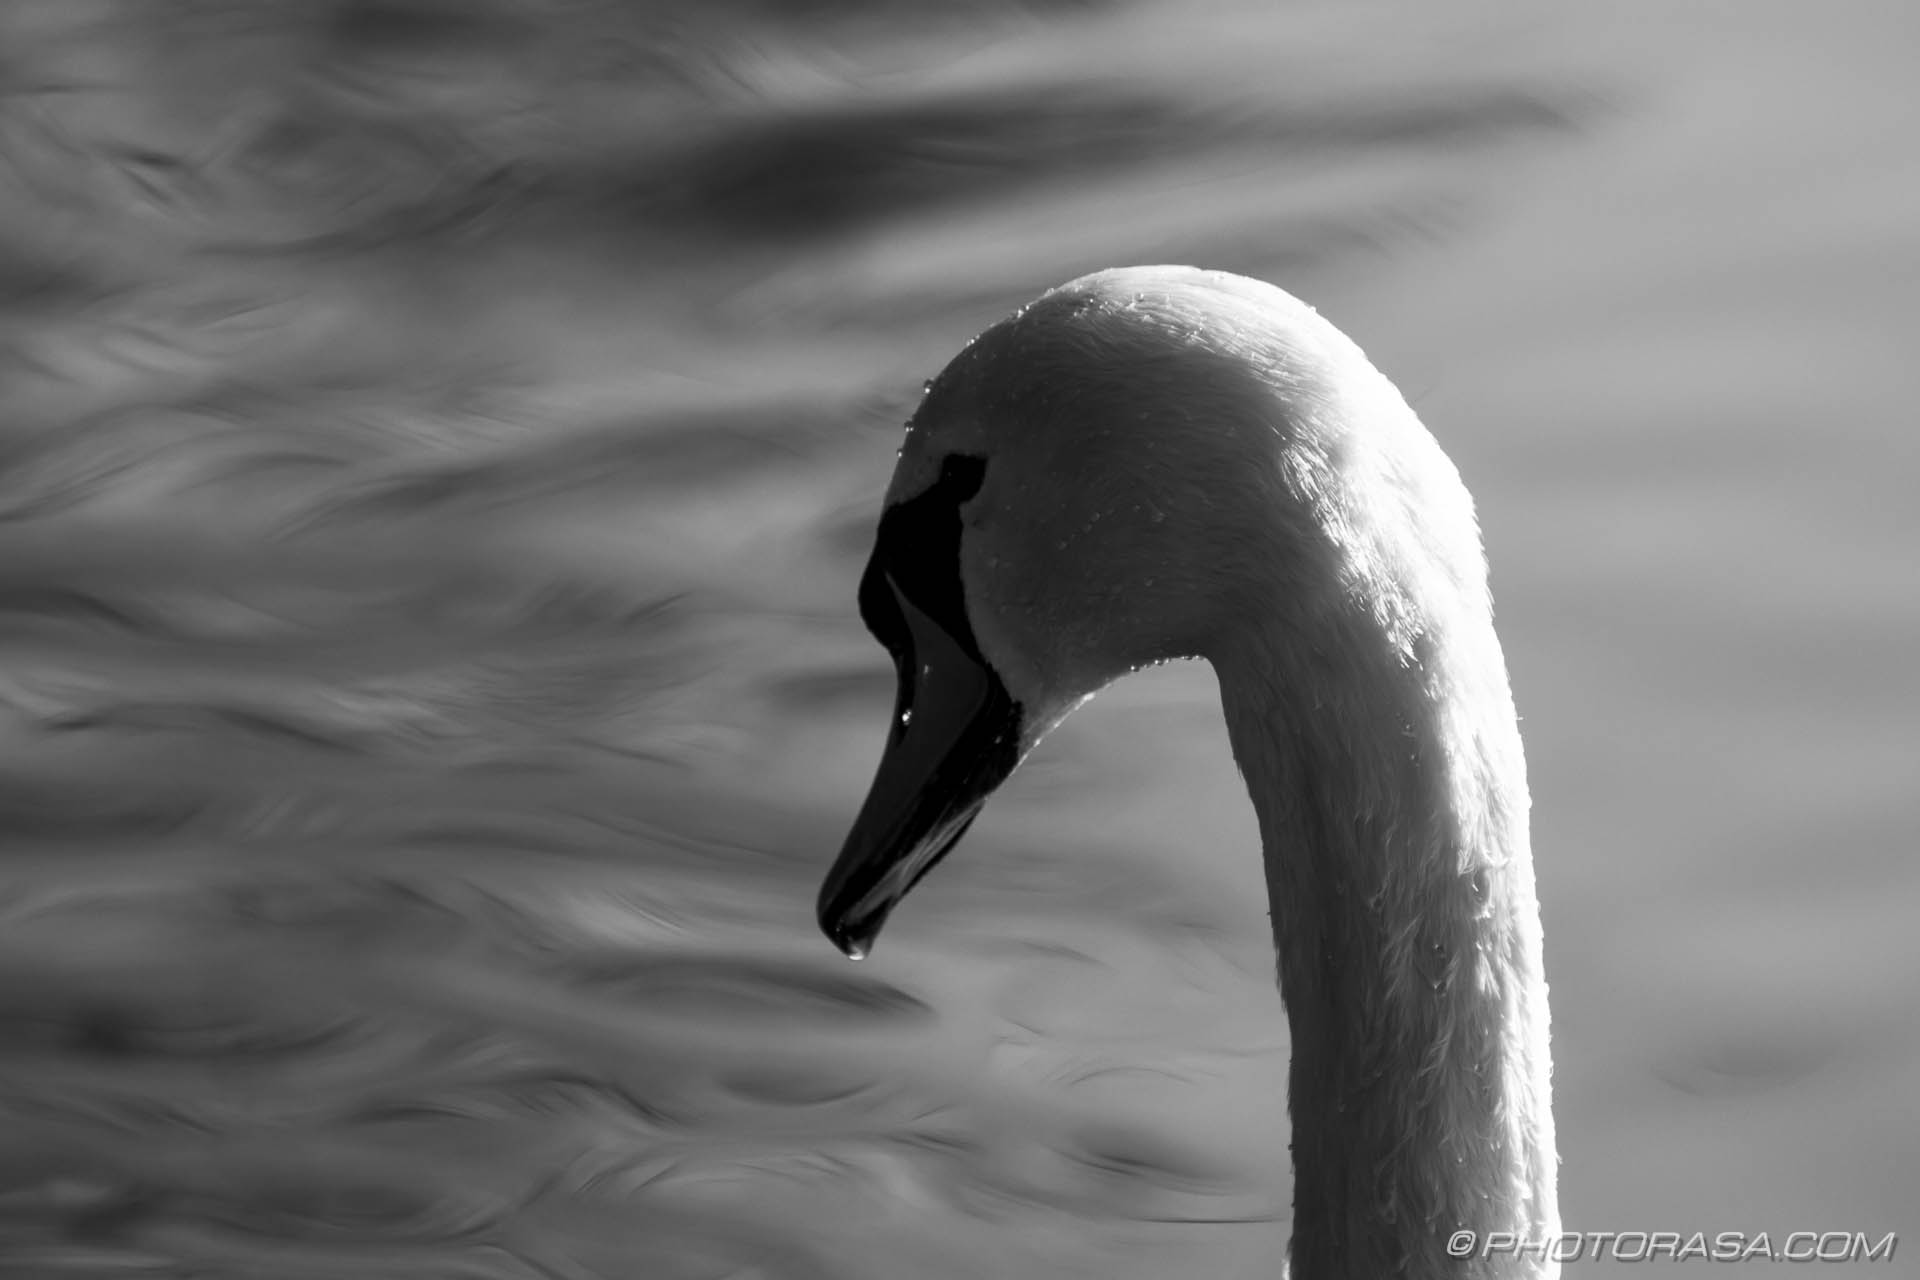 https://photorasa.com/art-swans/swan-and-water-ripples/